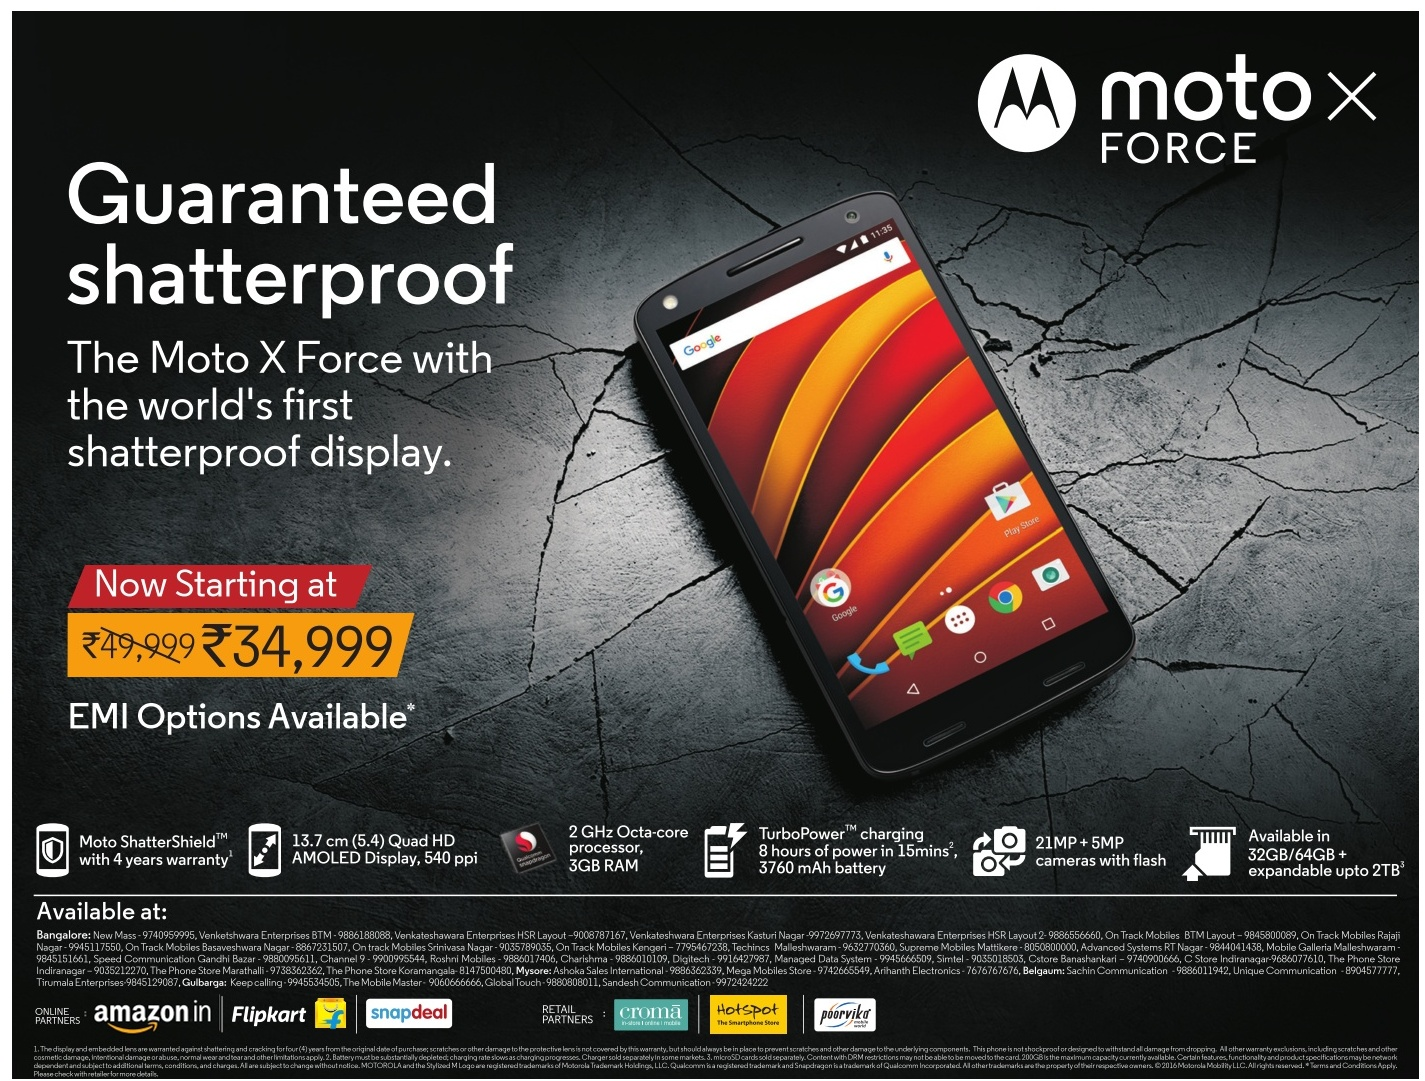 Amazing discount offer on Moto x Force guaranteed shatterproof | April 2016 discount offers